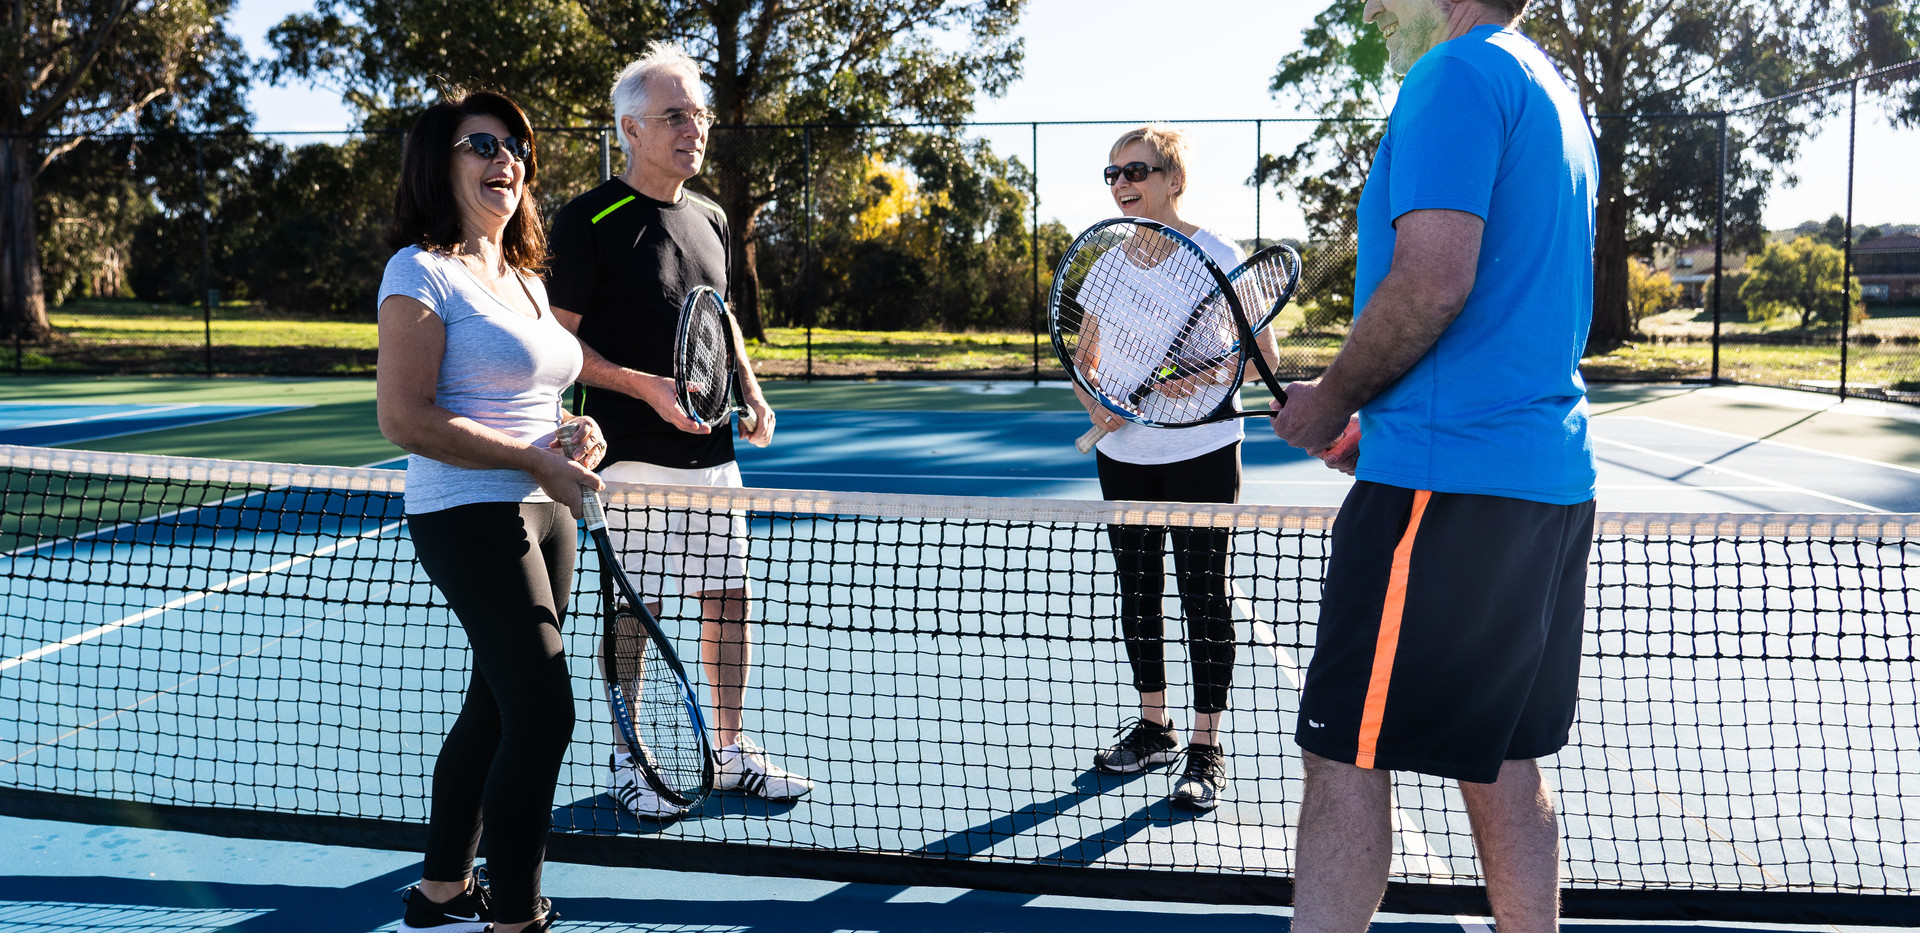 residents after a game of tennis at La Dimora reitrement village an hour north of Melbourne